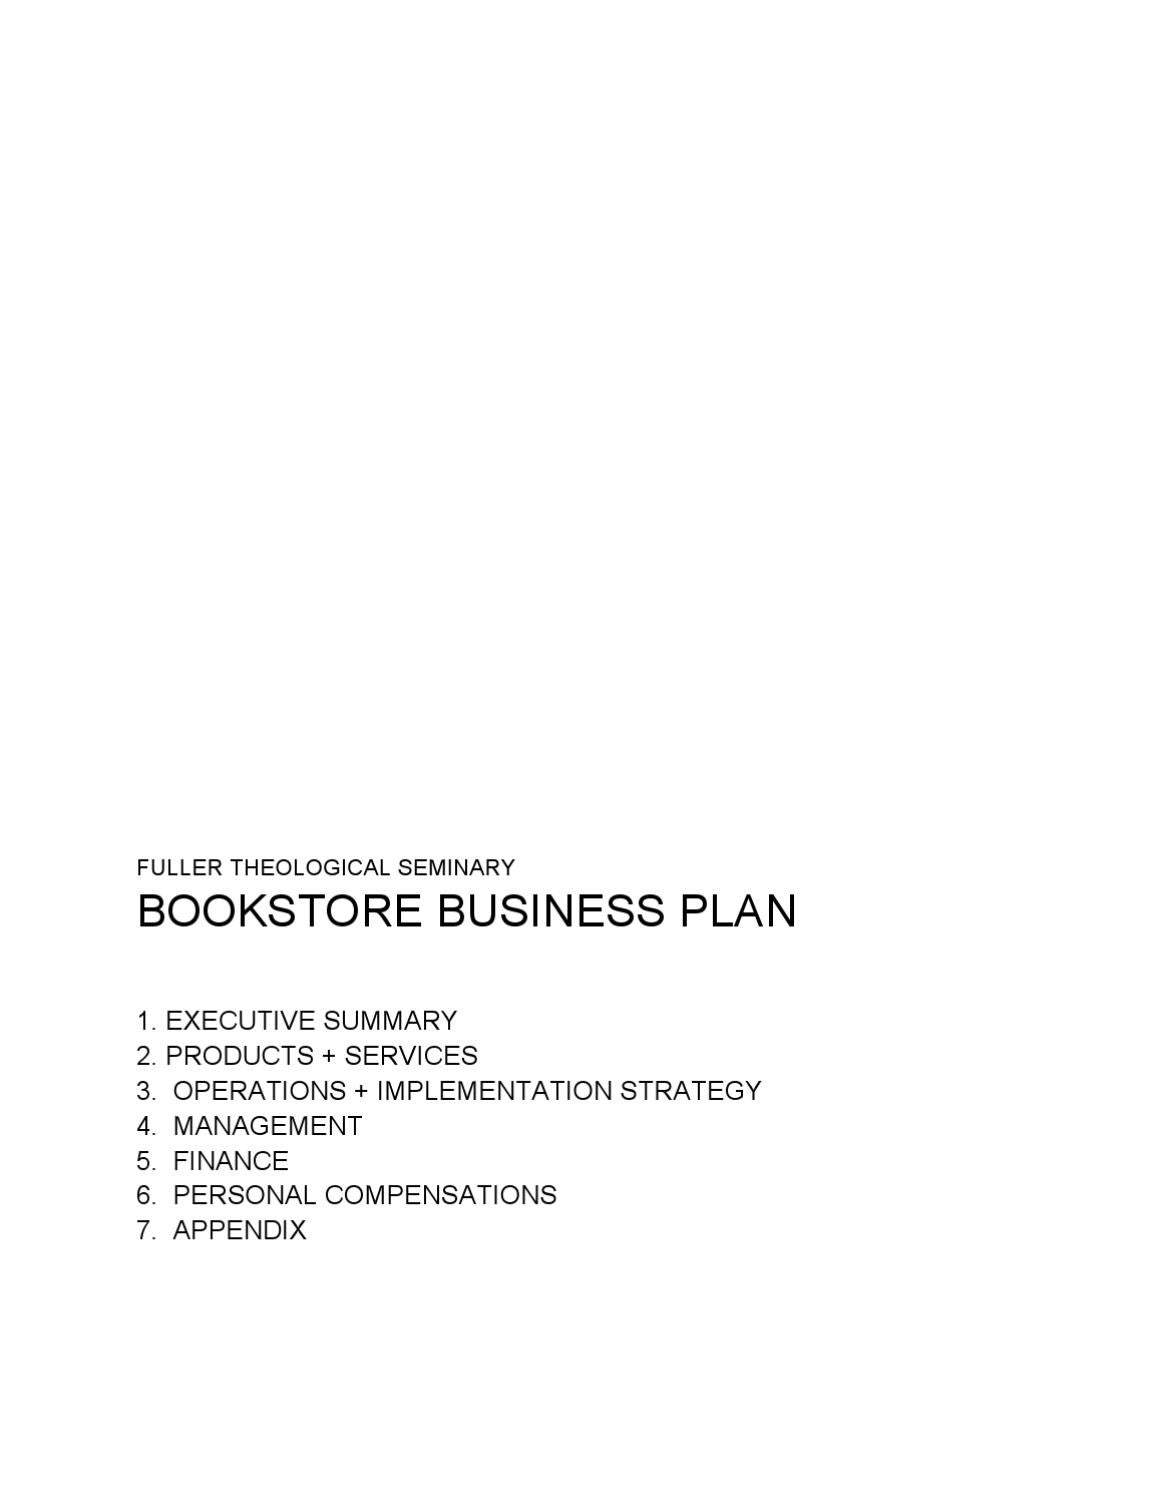 business plan book cafe essay 1 business plan outline use the following outline to summarize your business planning decisions title each section of your written plan as indicated in the outline write, in your own words.